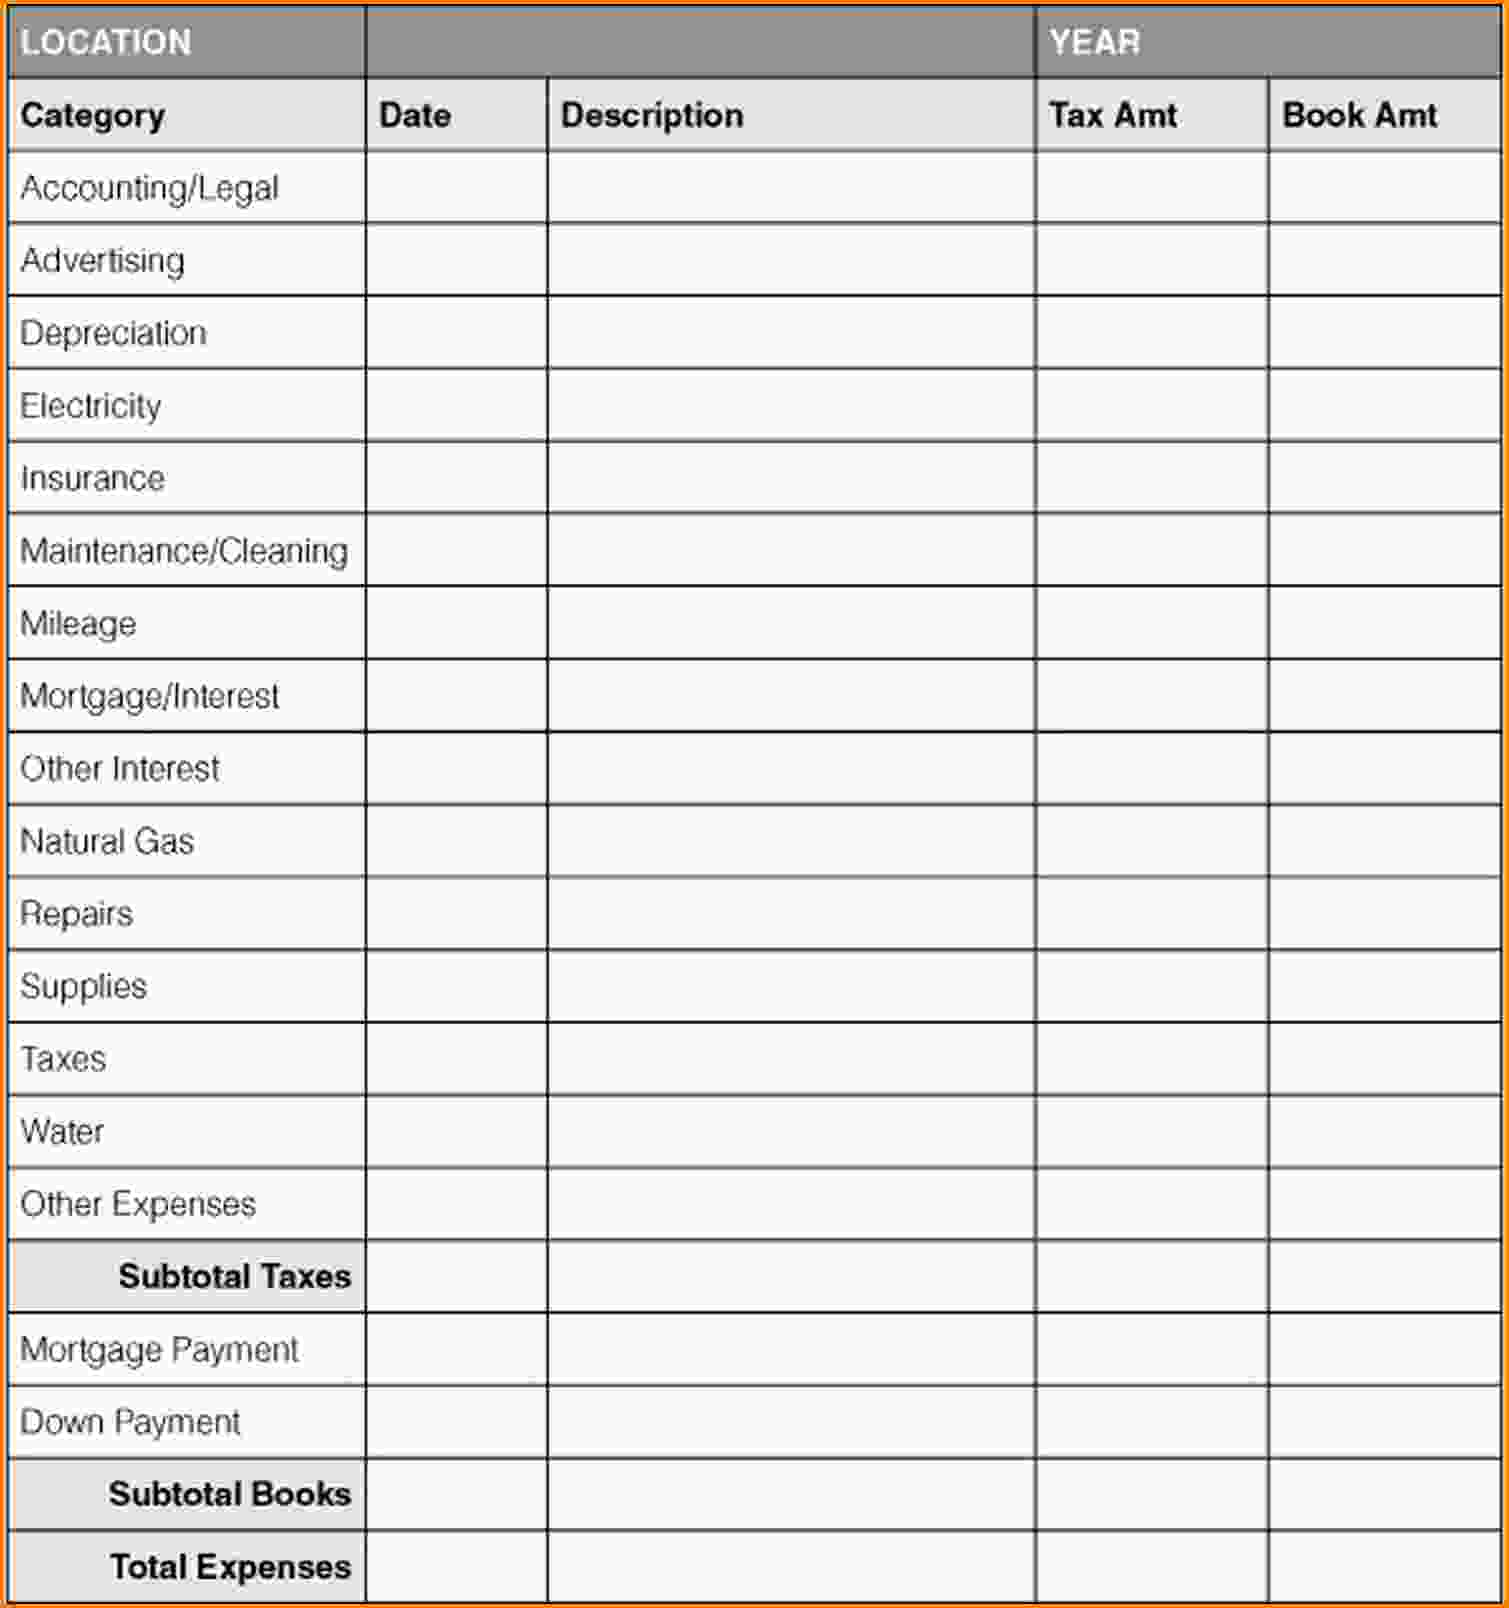 Microsoft Excel Accounting Templates Download Accounting Spreadsheet Template Accounting Spreadsheet Spreadsheet Templates for Busines Accounting Spreadsheet Spreadsheet Templates for Busines Accounting Spreadsheets Free